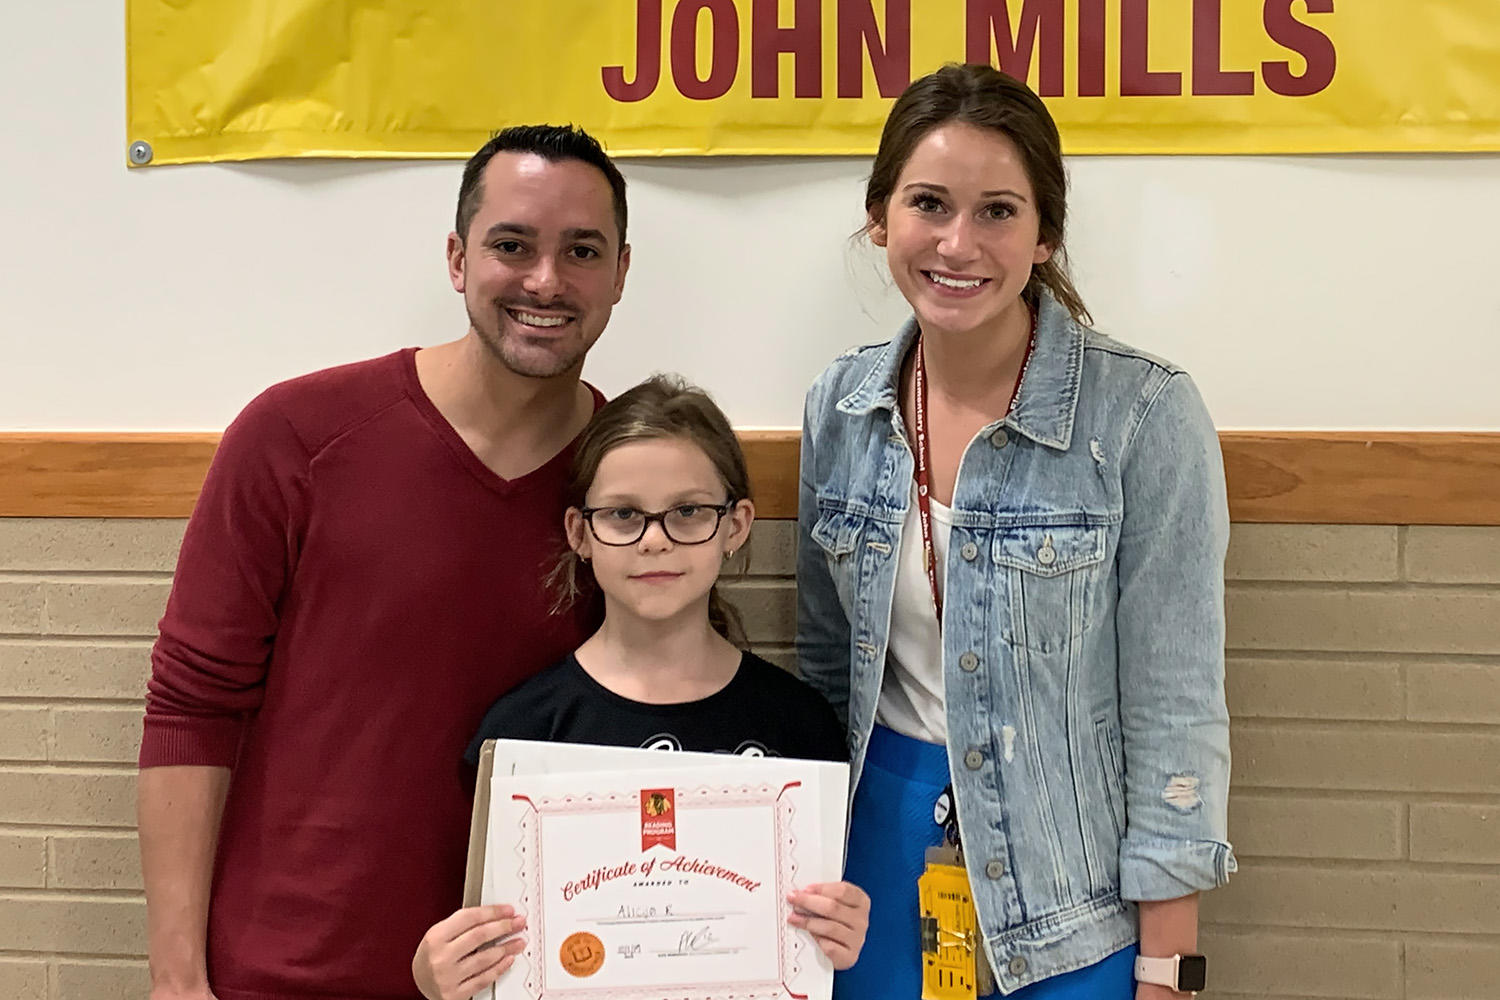 John Mills teachers Collin Sylvano and Nicole Warren congratulate Alicja Rusek on being named one of the top five readers for September in the Chicago Blackhawks' reading program.